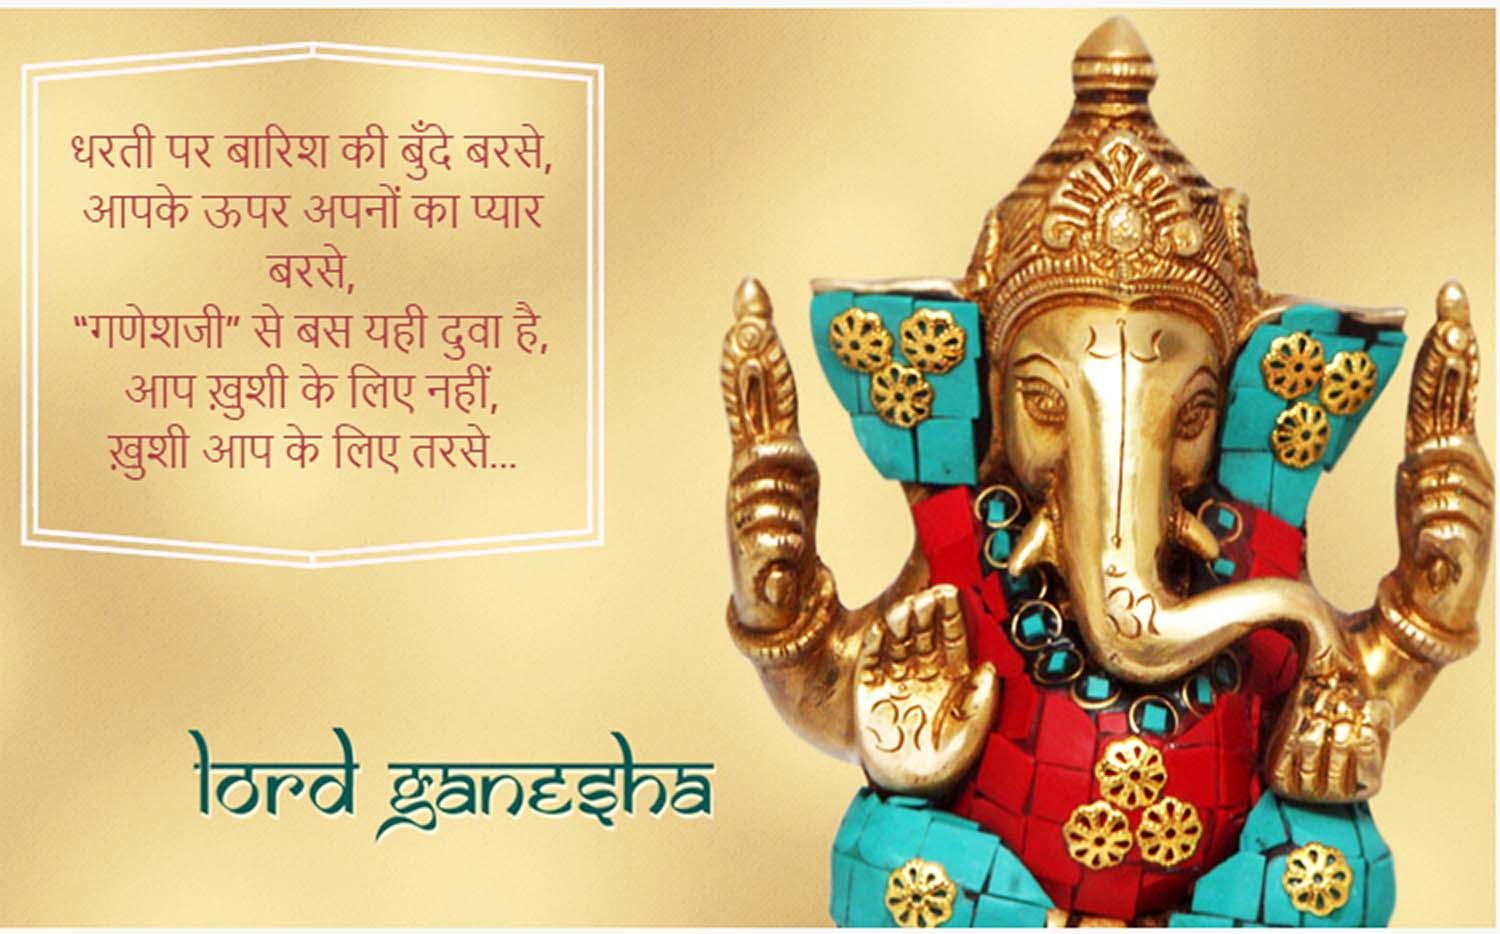 Happy Ganesh Chaturthi messages in Hindi